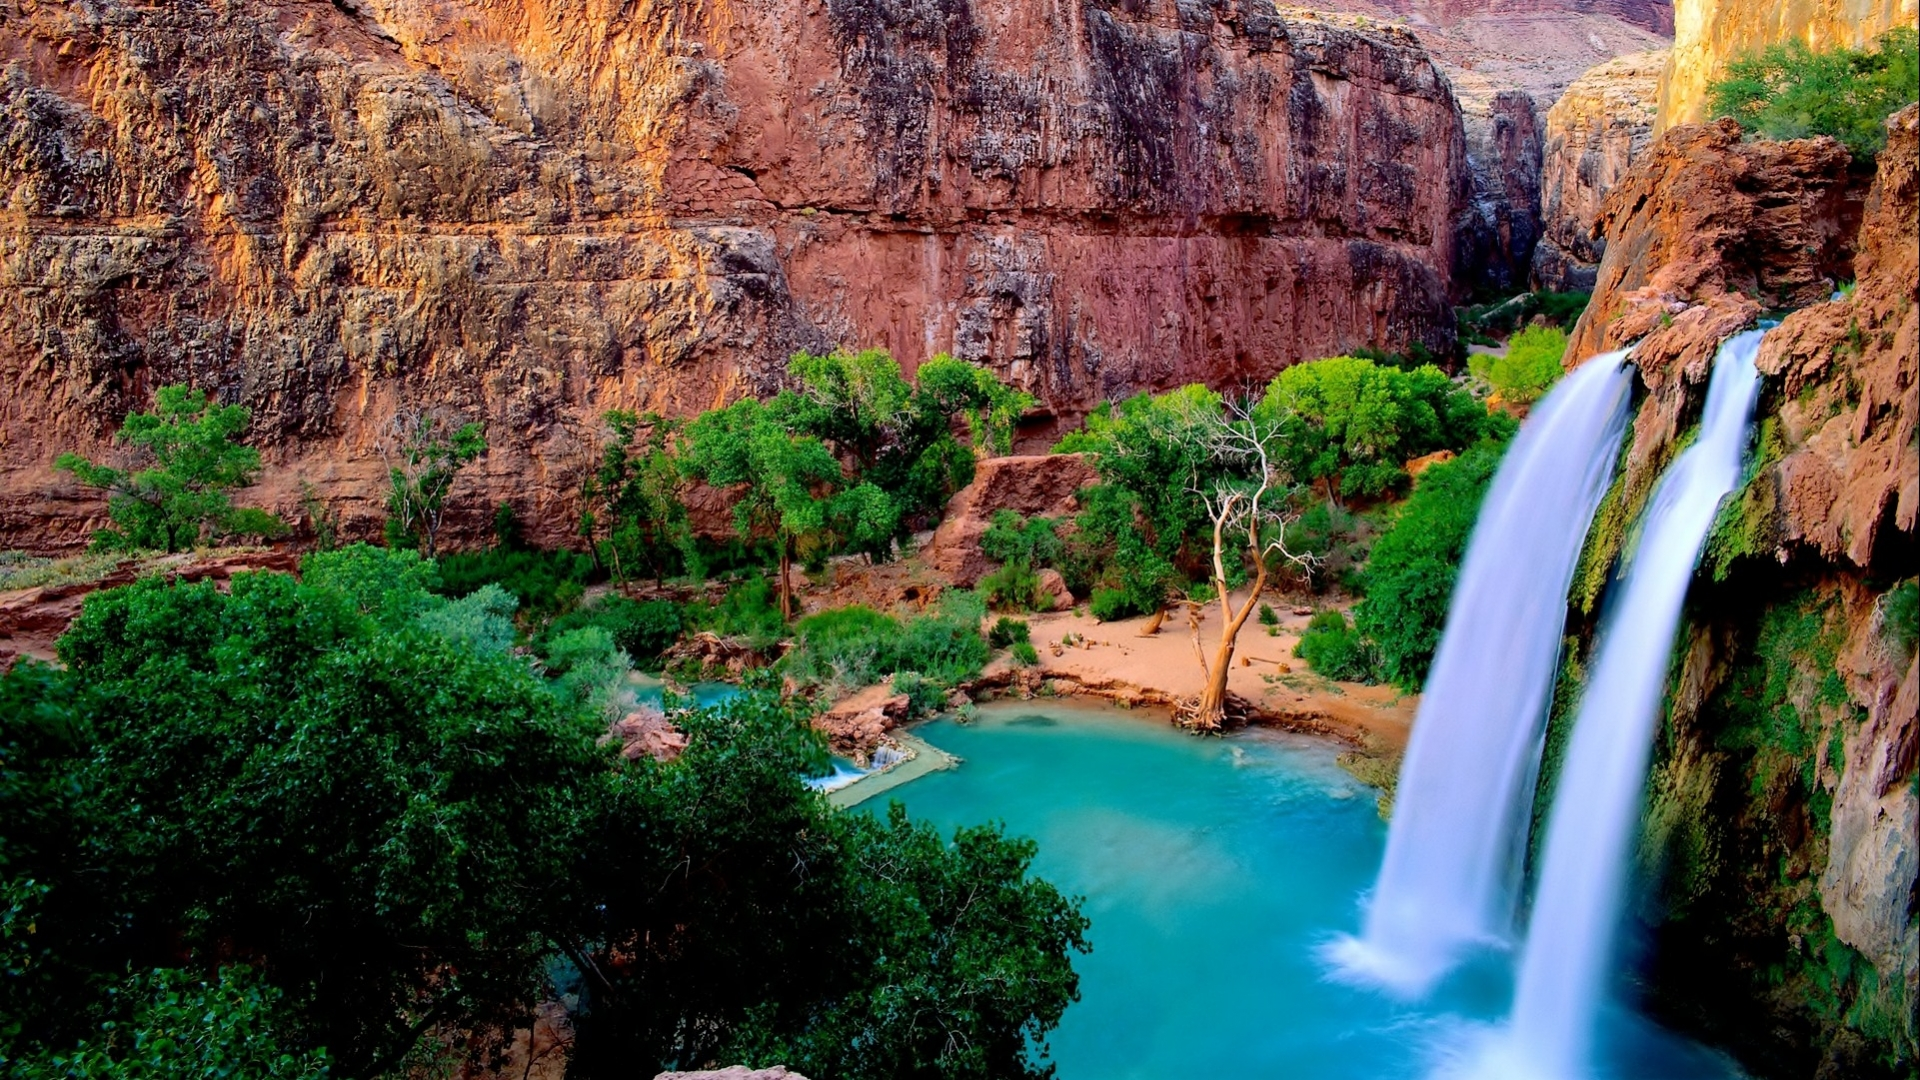 soothing waterfall wallpaper most beautiful waterfall wallpapers for desktop background